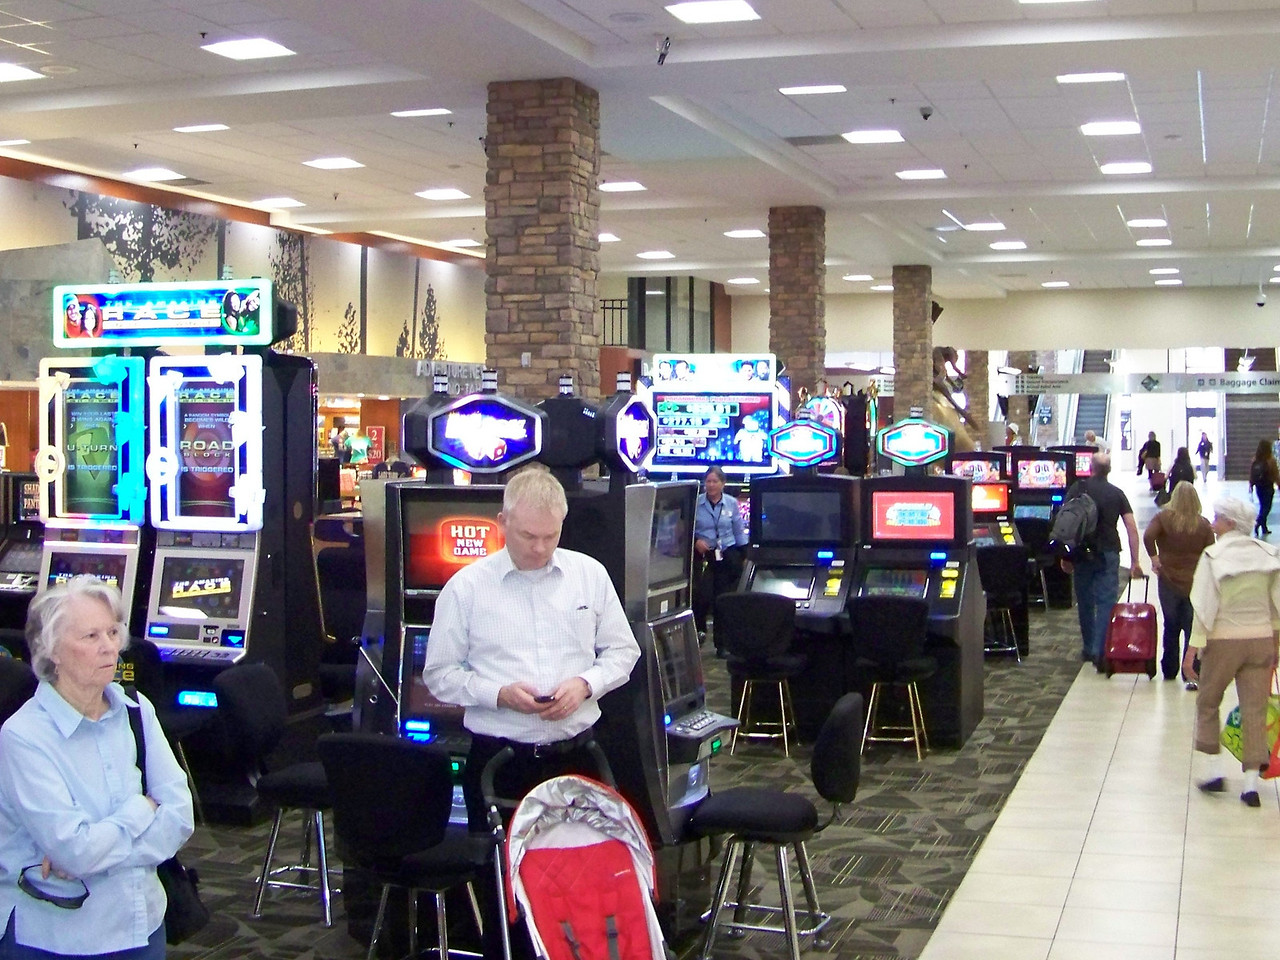 After the carwash, we made it to the airport with time to spare.  Good thing they have slot machines in the terminal to keep us busy!  :-)<br /> [Reno]